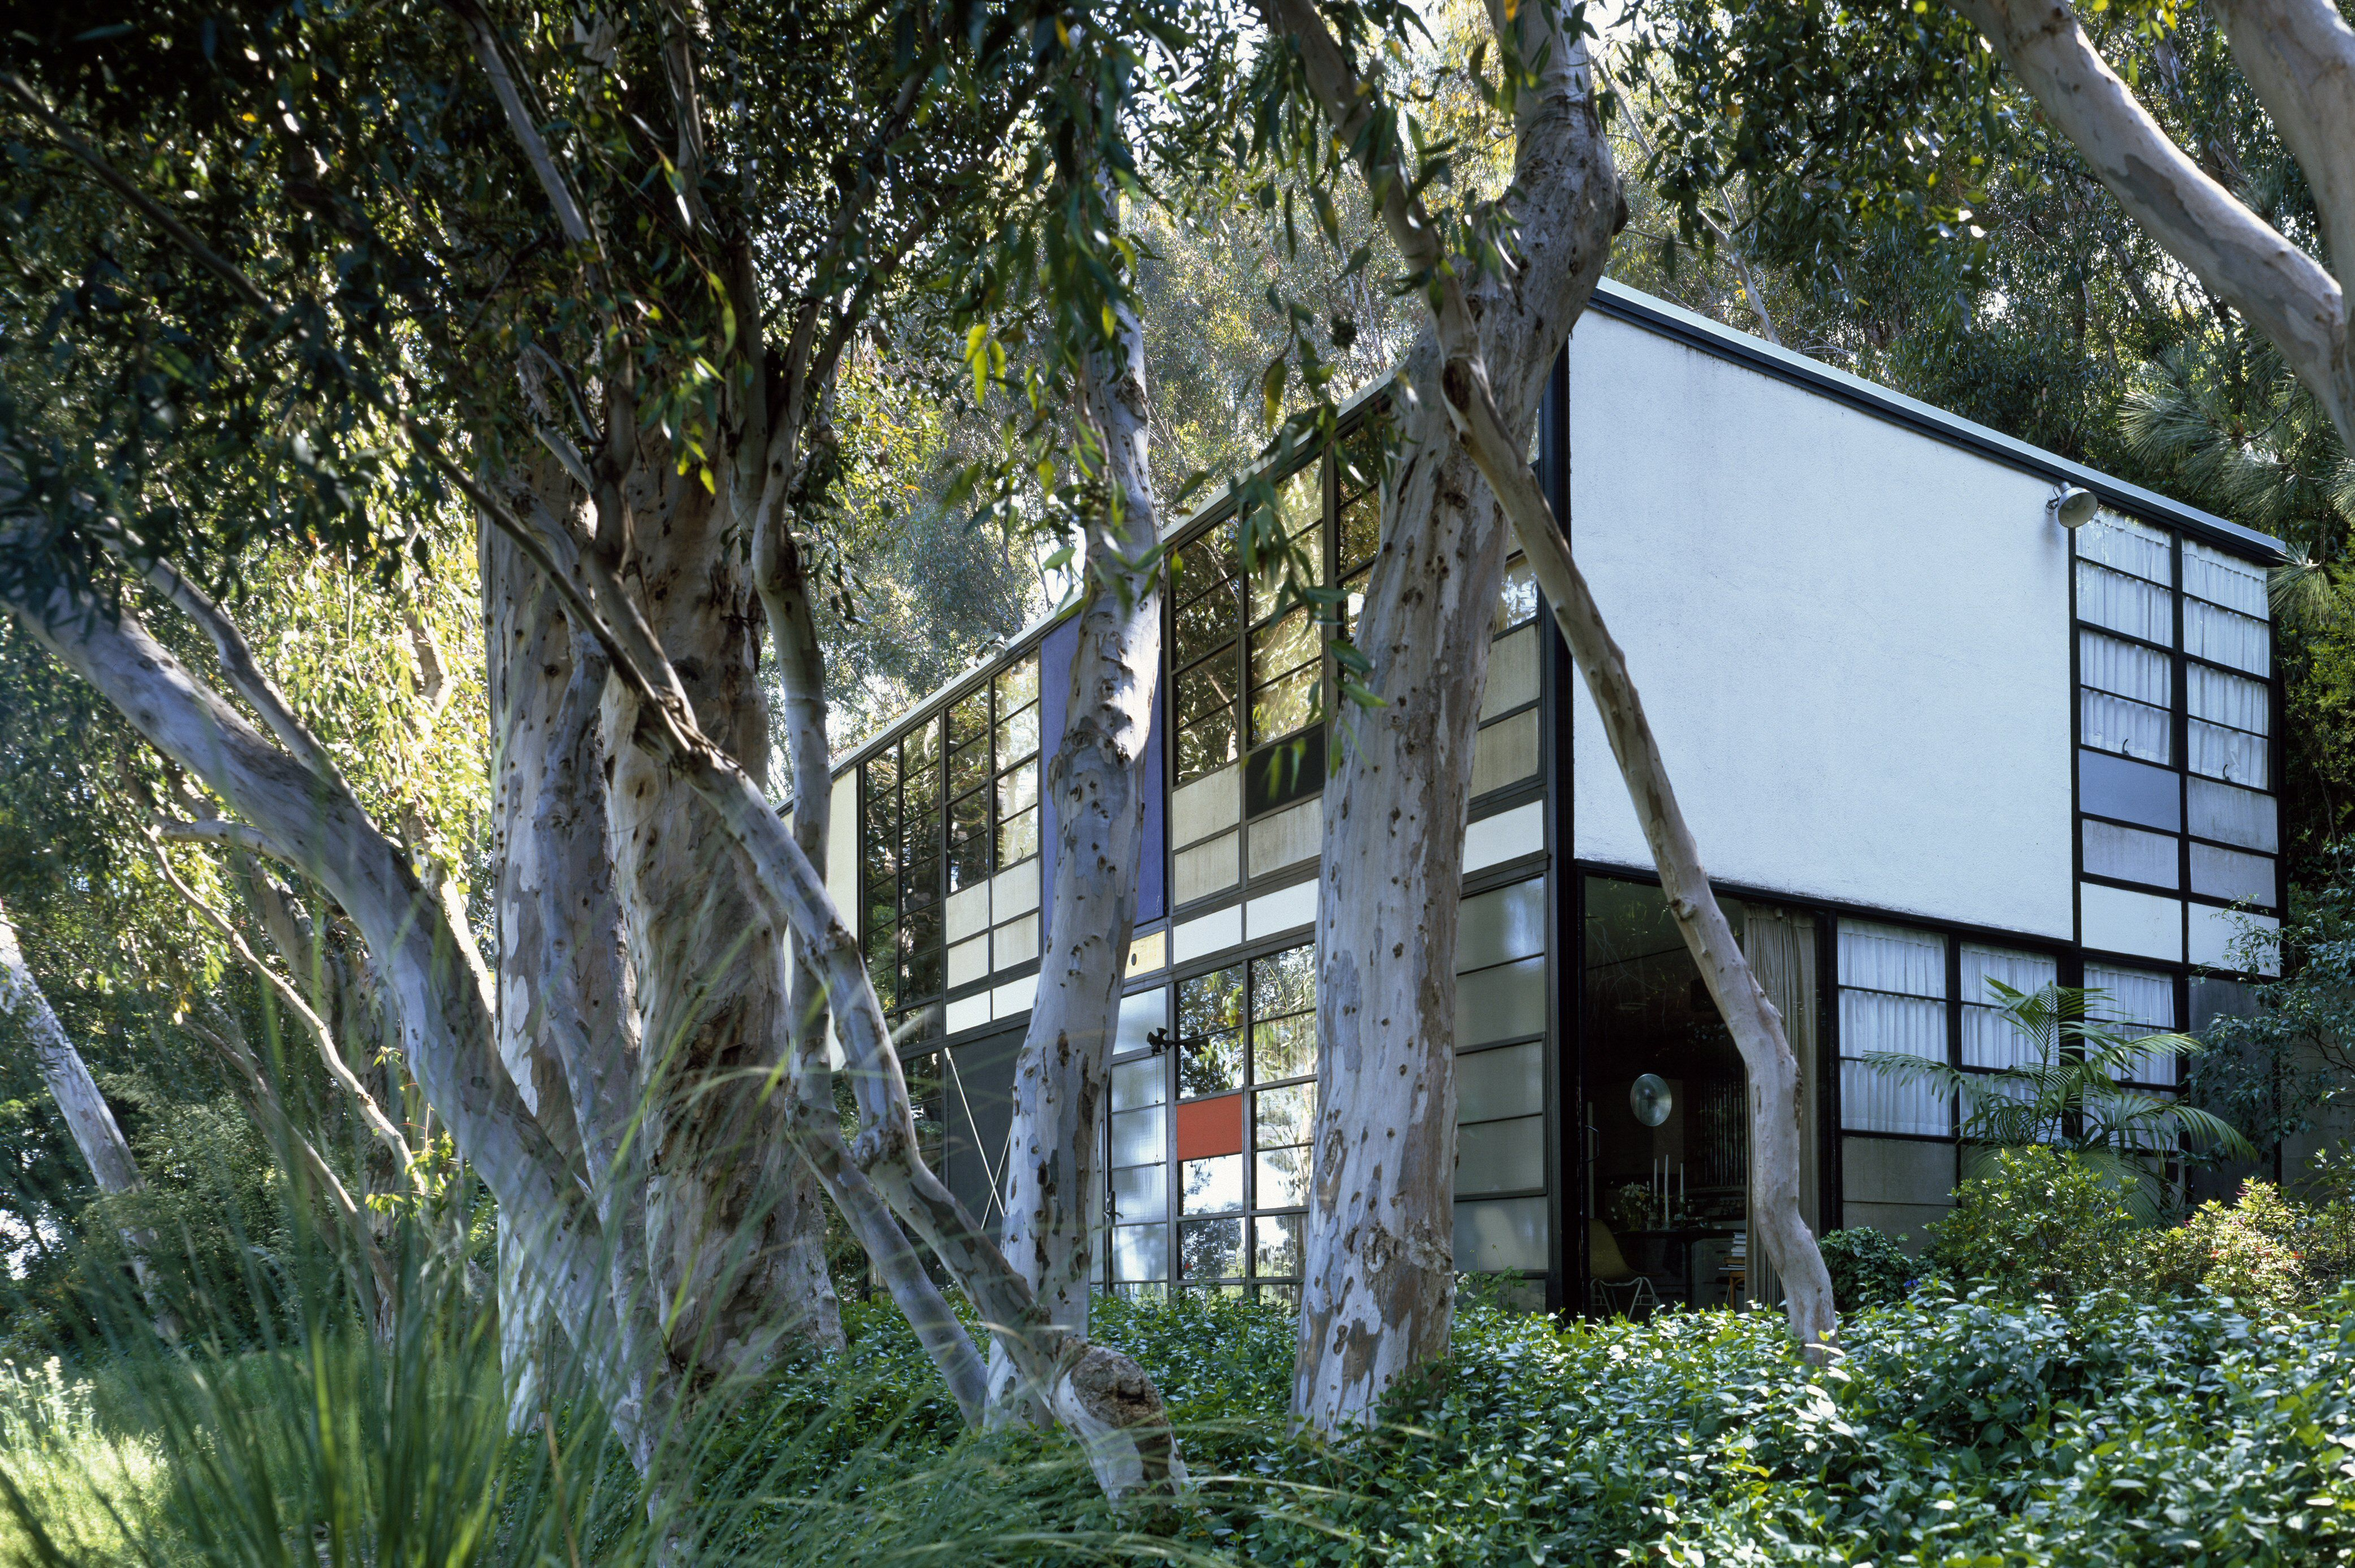 The Eames House, also known as Case Study #8, by Charles and Ray Eames